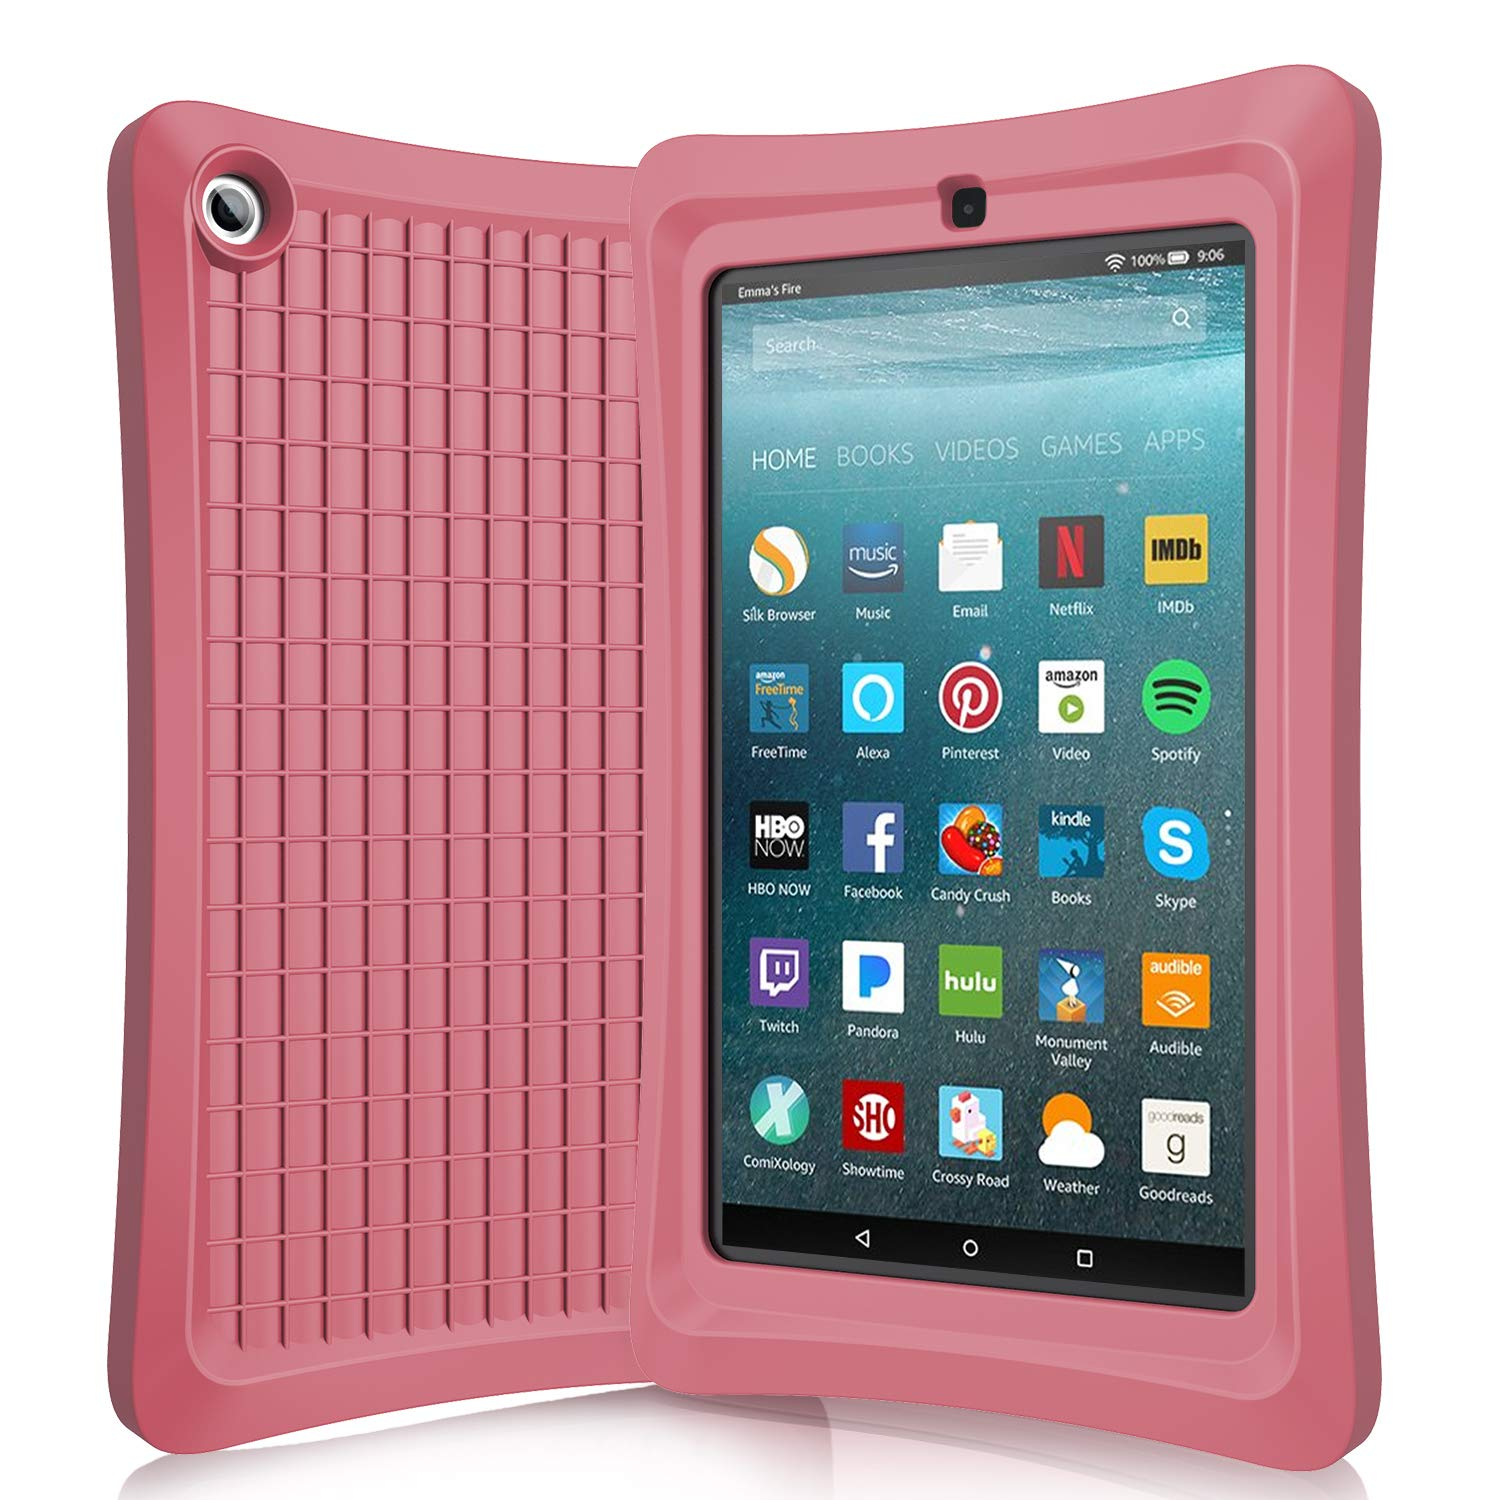 Benazcap Case for All-New 7 Inch Tablet 2019 - Lightweight Rugged Shockproof Anti Slip Soft TPU Case Protective Kids Cover for 2019 Tablet 7 Inch 9th Gen,Crimson